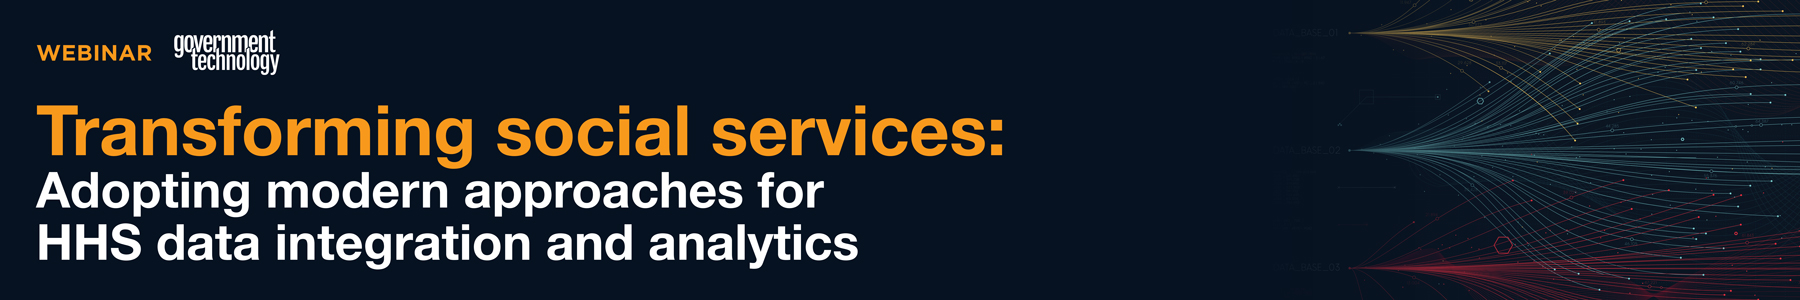 Transforming social services: Adopting modern approaches for HHS data integration and analytics